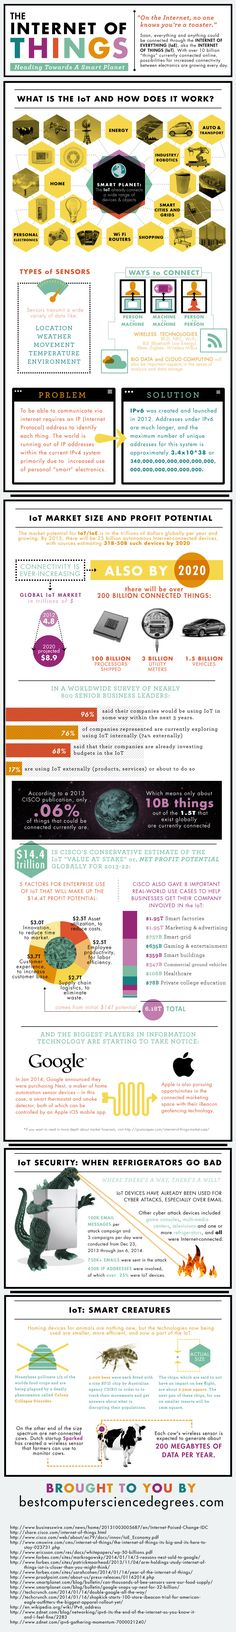 The #InternetofThings: Heading Towards A Smarter Planet - #infographic #InternetofEverythings